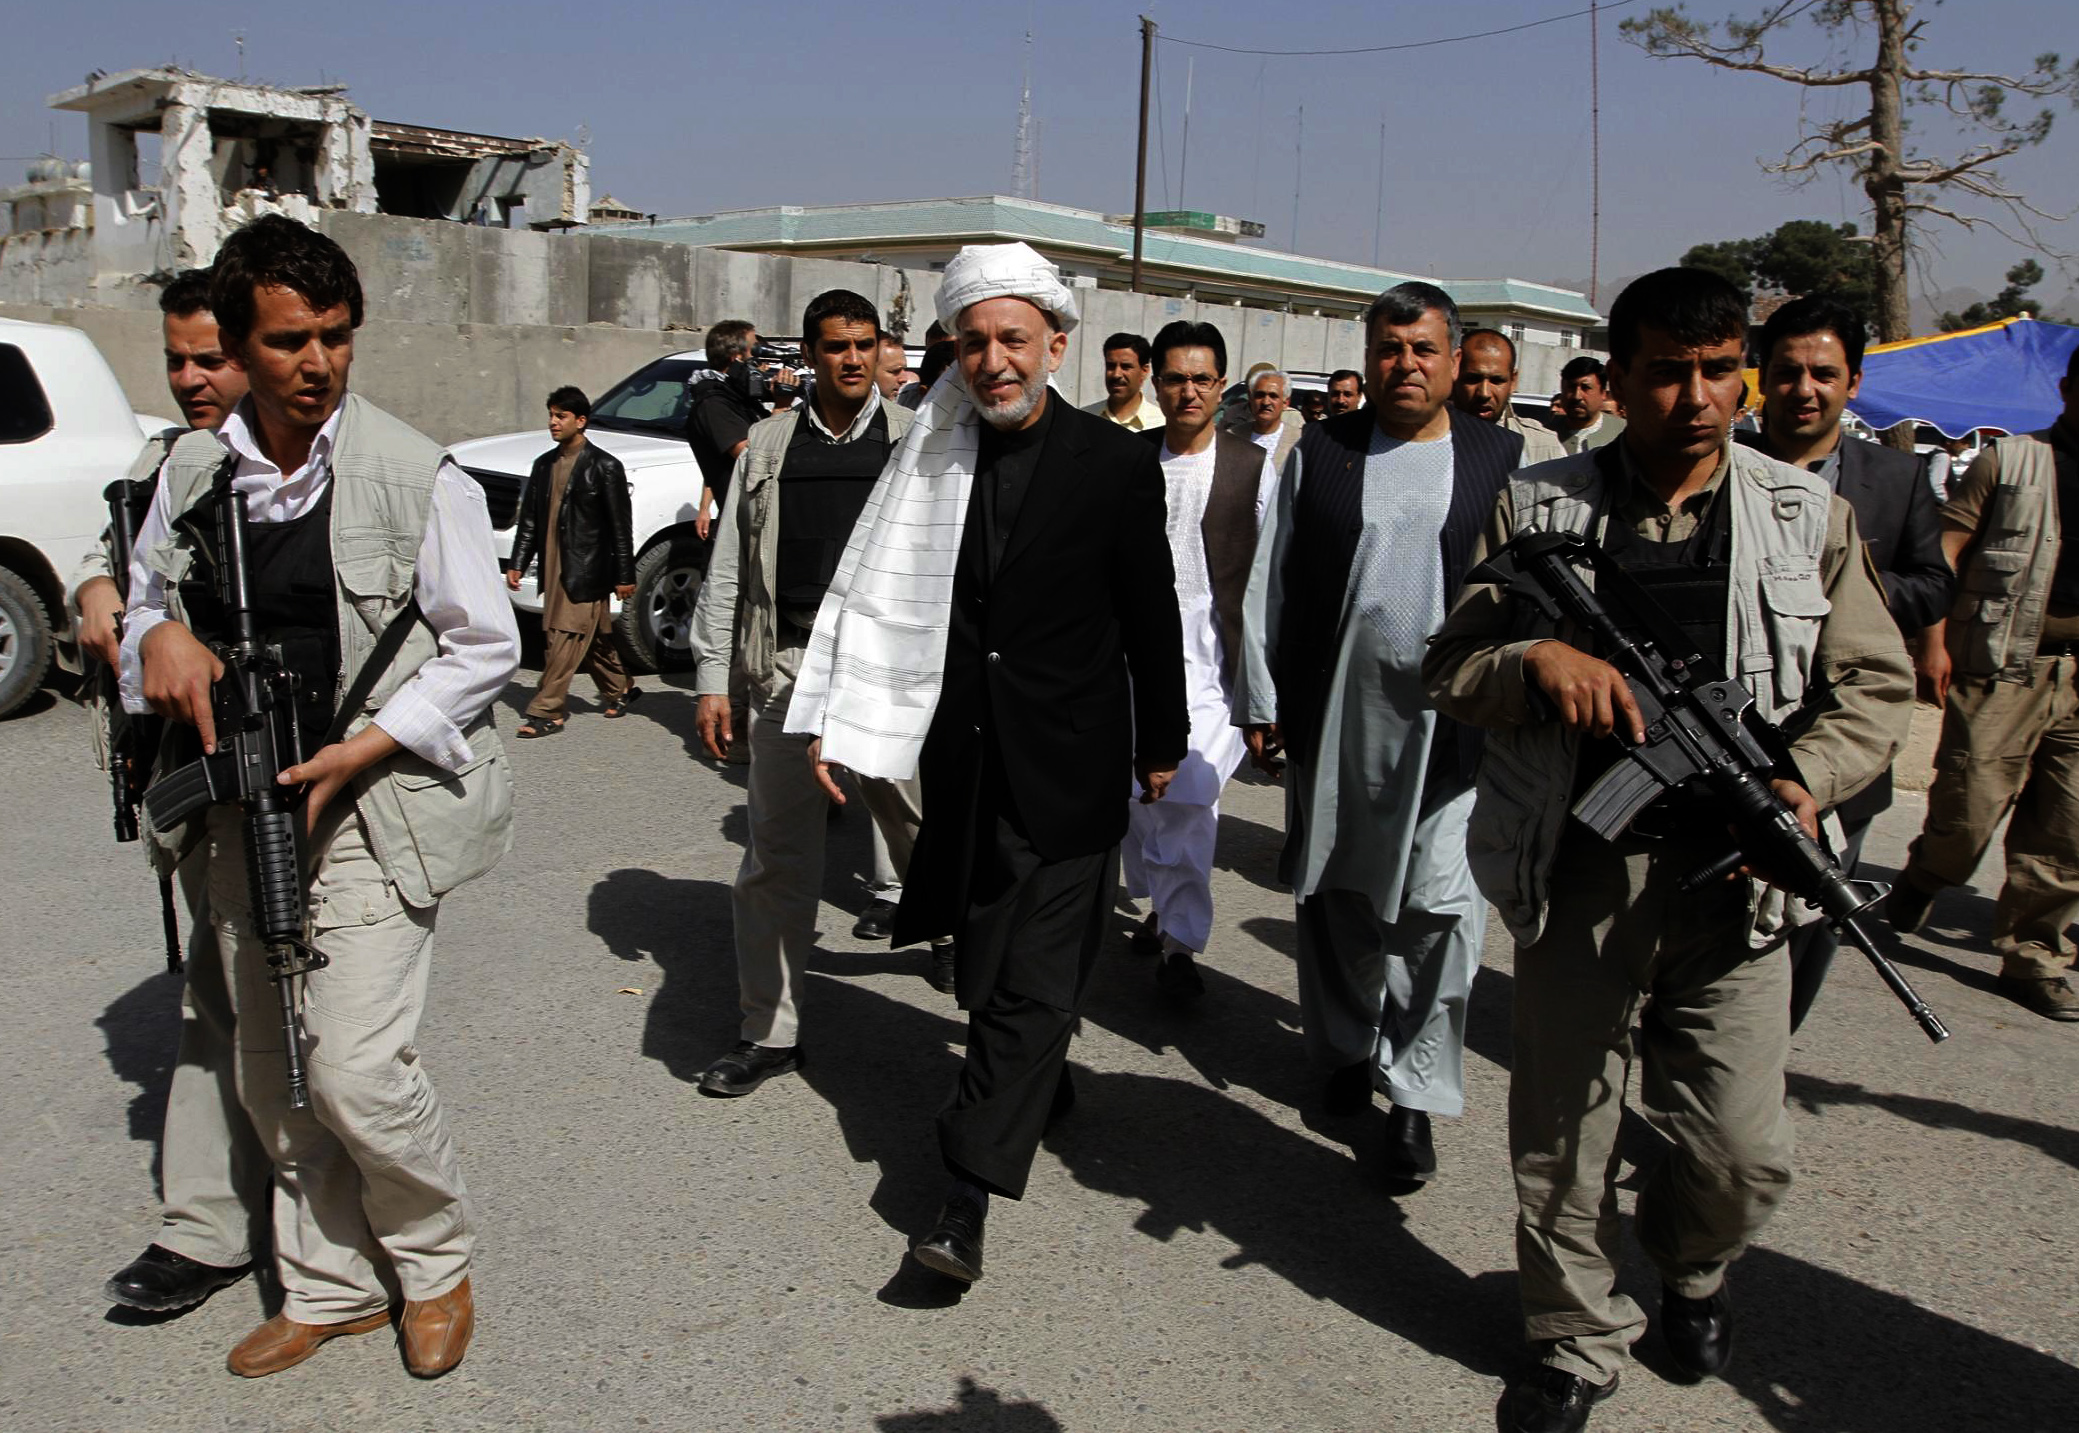 Afghan President Hamid Karzai, center, surrounded by his body guards walks through Kandahar city, south of Kabul, Afghanistan yesterday.